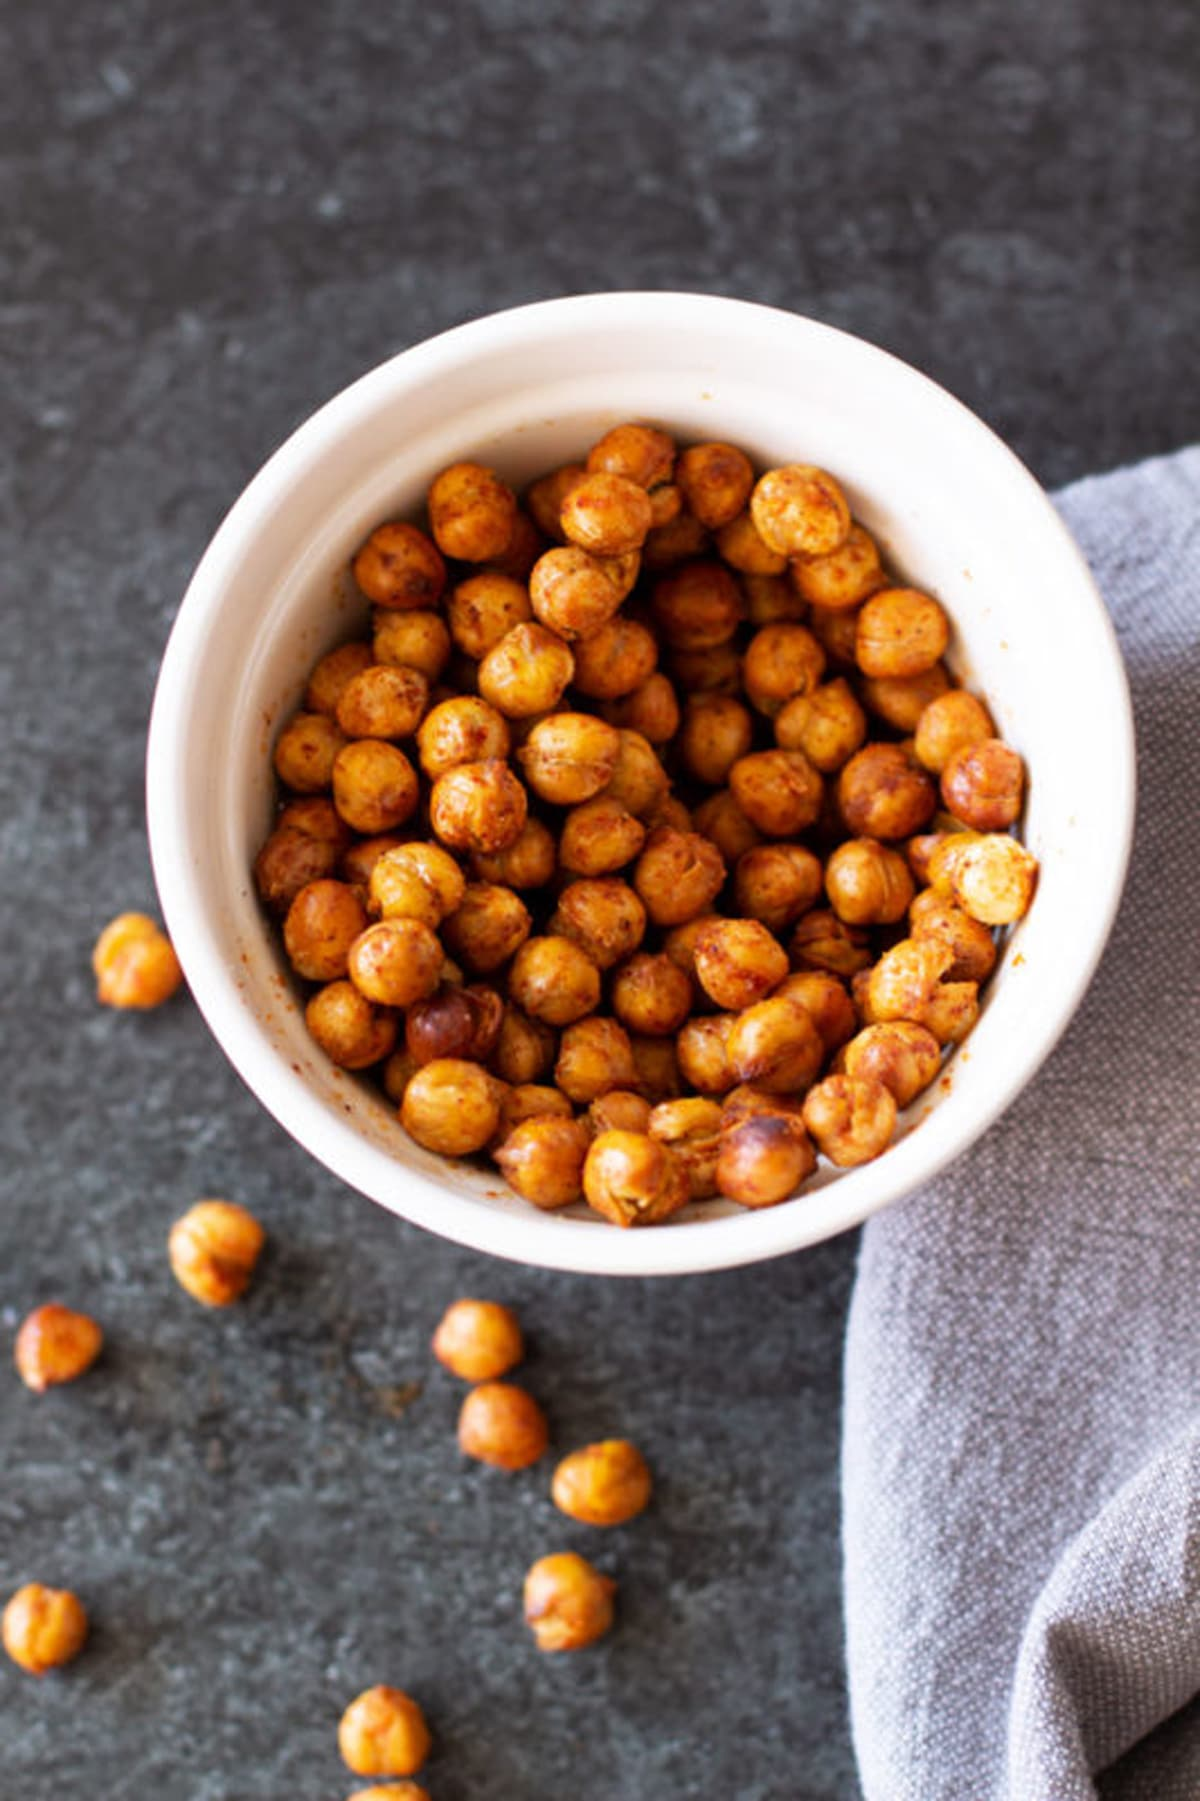 White bowl containing chili lime seasoned chickpeas on a black counter.